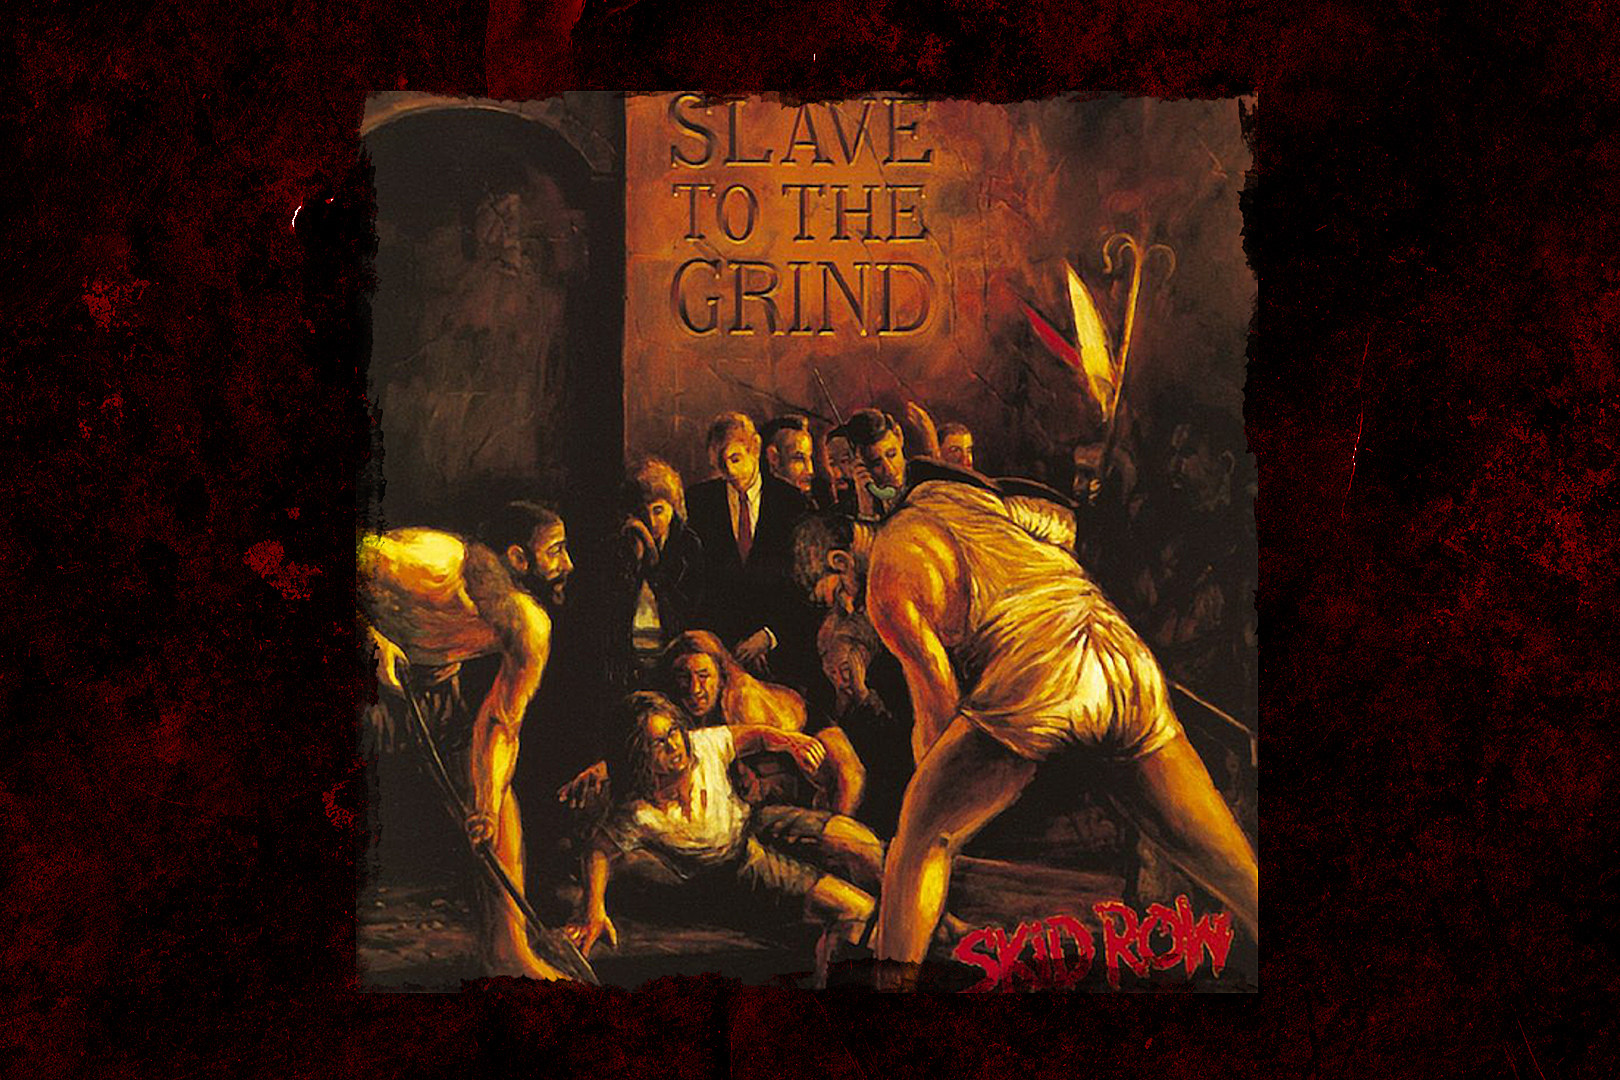 28 Years Ago: Skid Row Release 'Slave to the Grind'